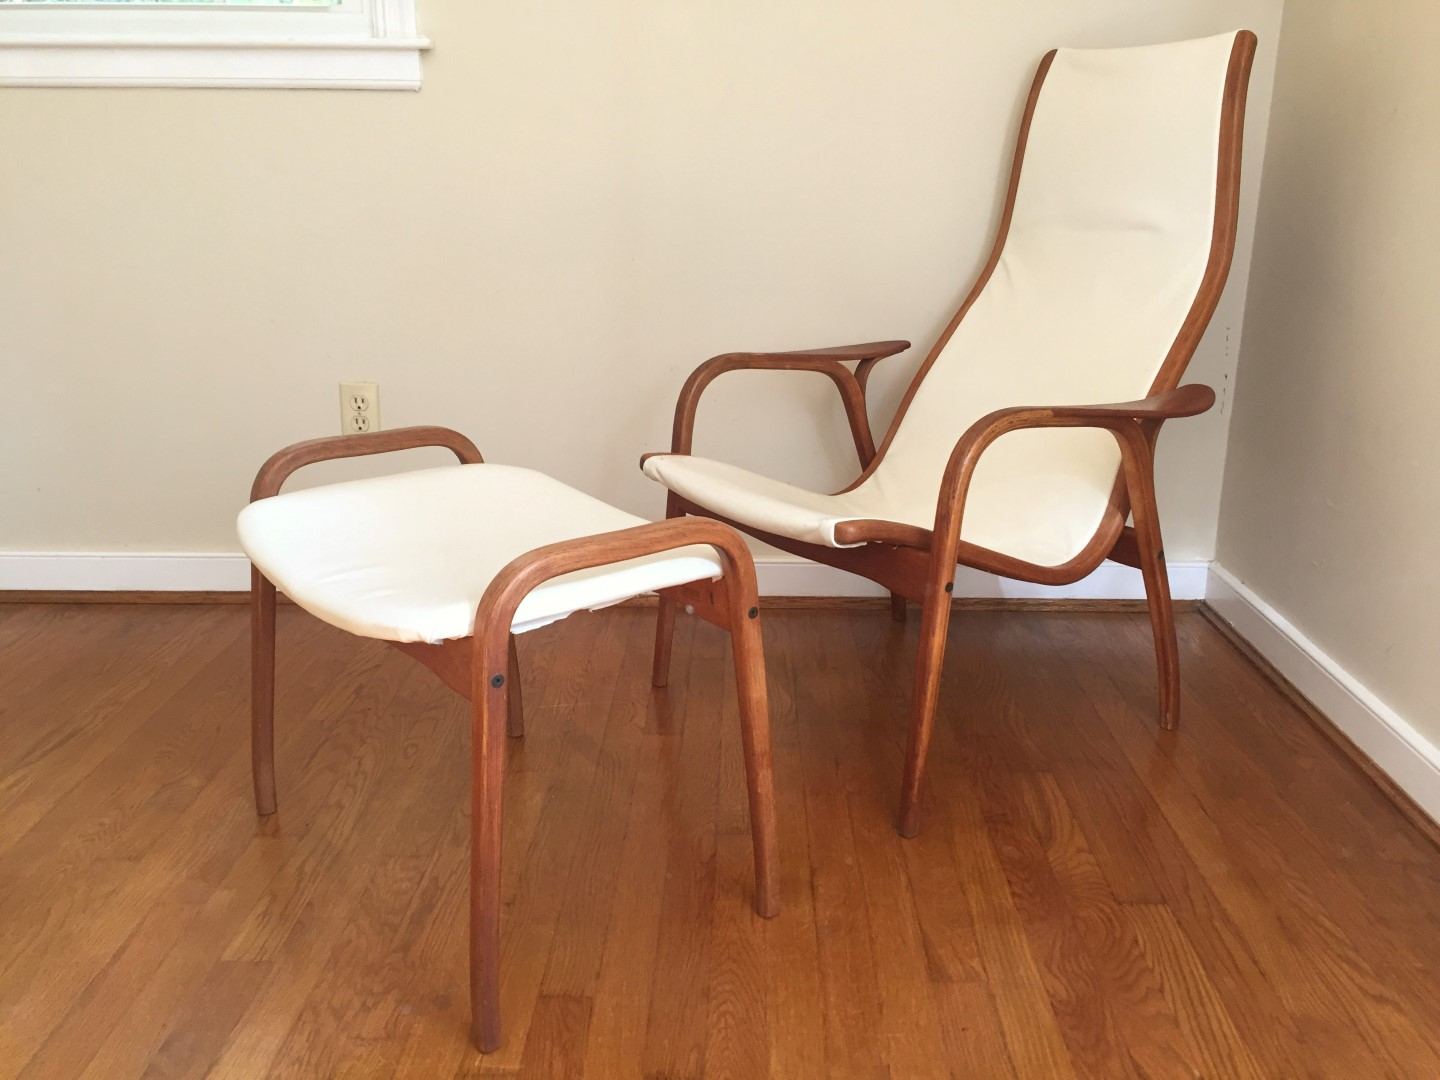 Lamino Chair and ottoman by Yngve Ekström for Swedese